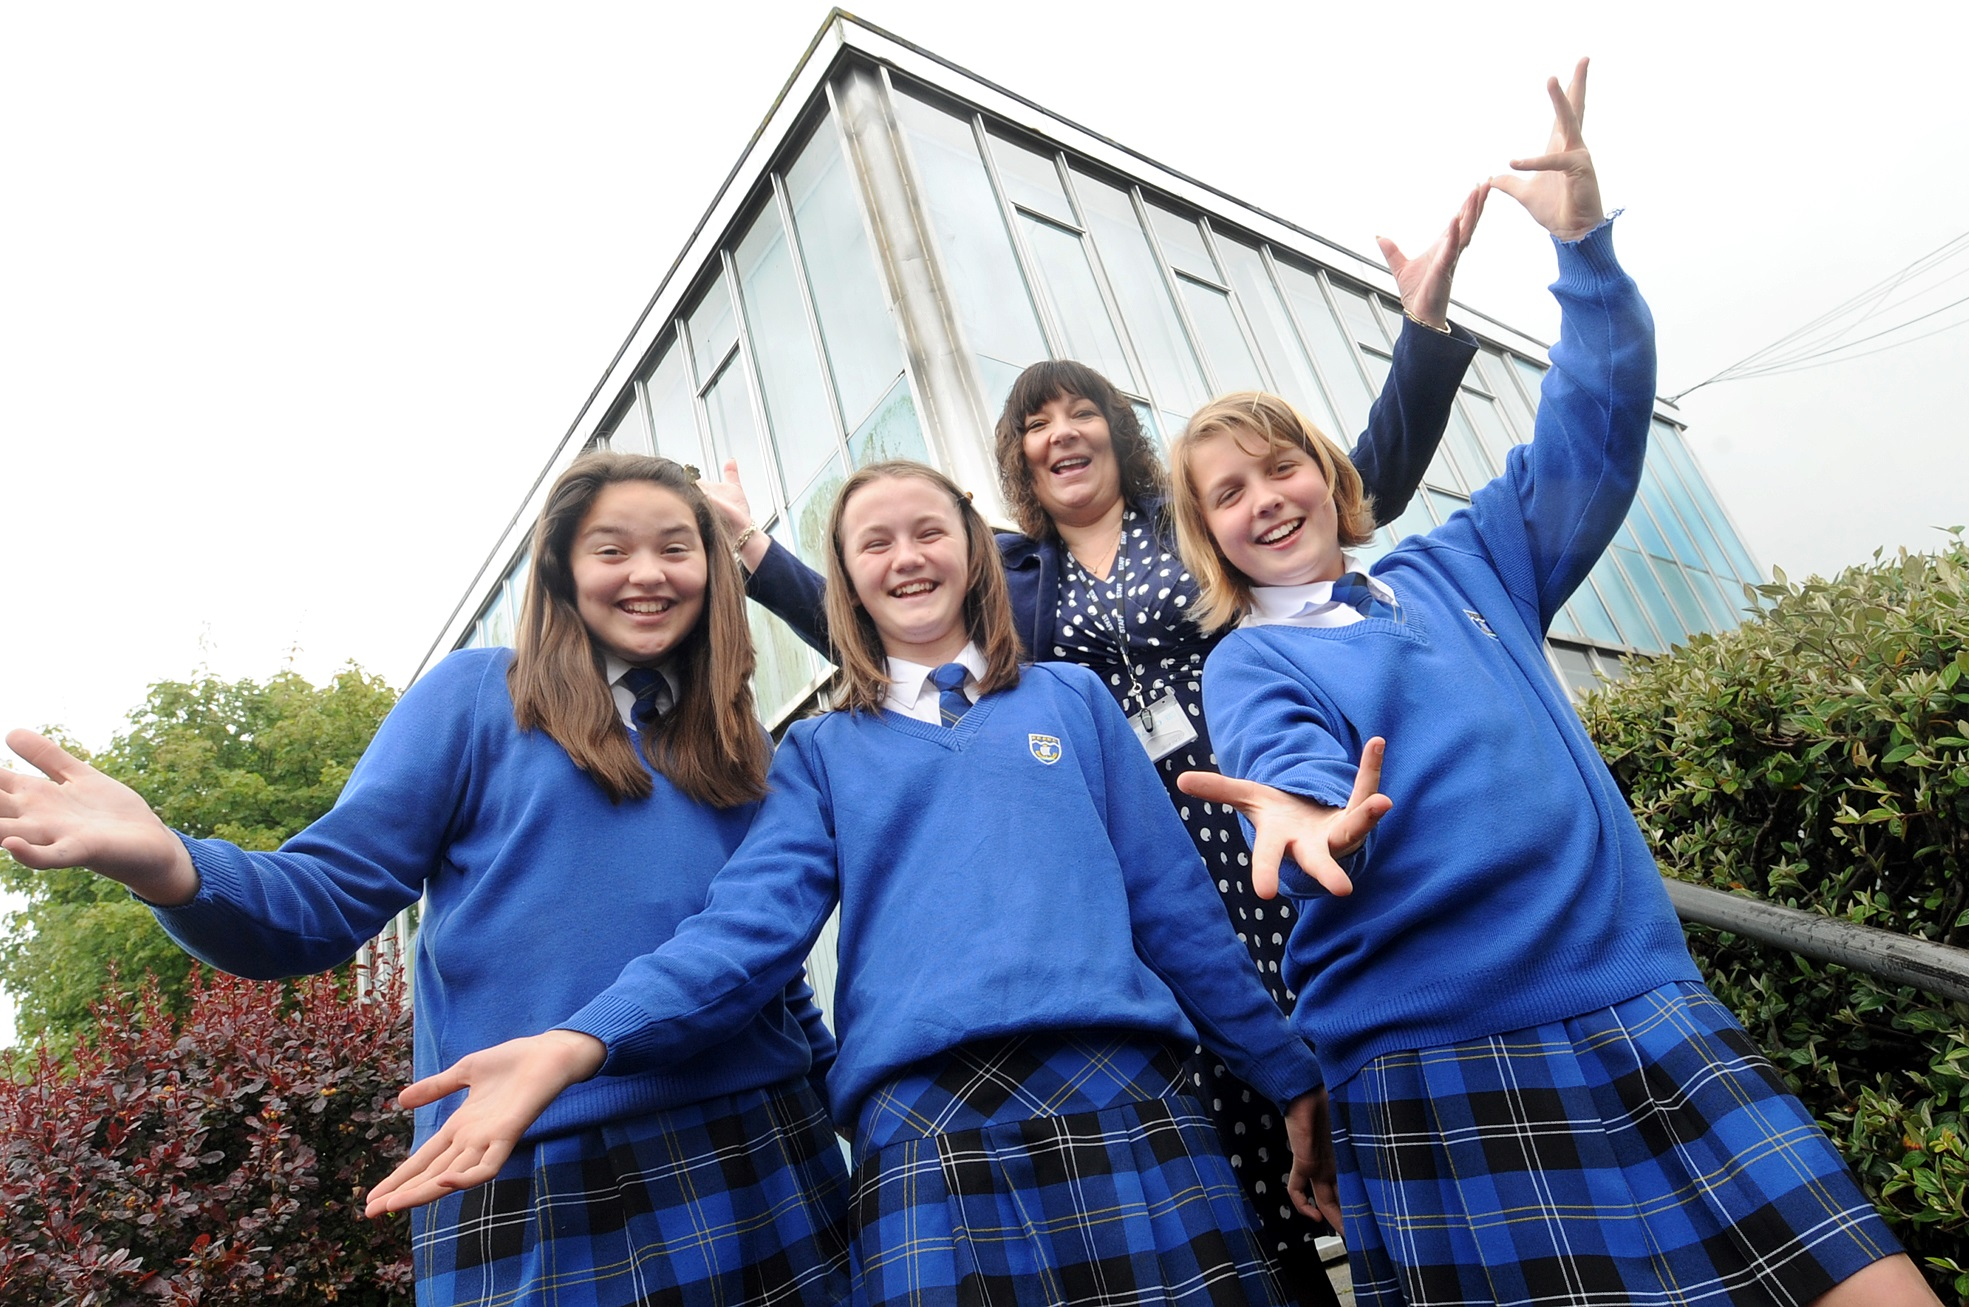 Students Lowenna Pollard, Harriet Eamer, Kacey Wignall celebrating the new funding with Jackie Parker, director of fi